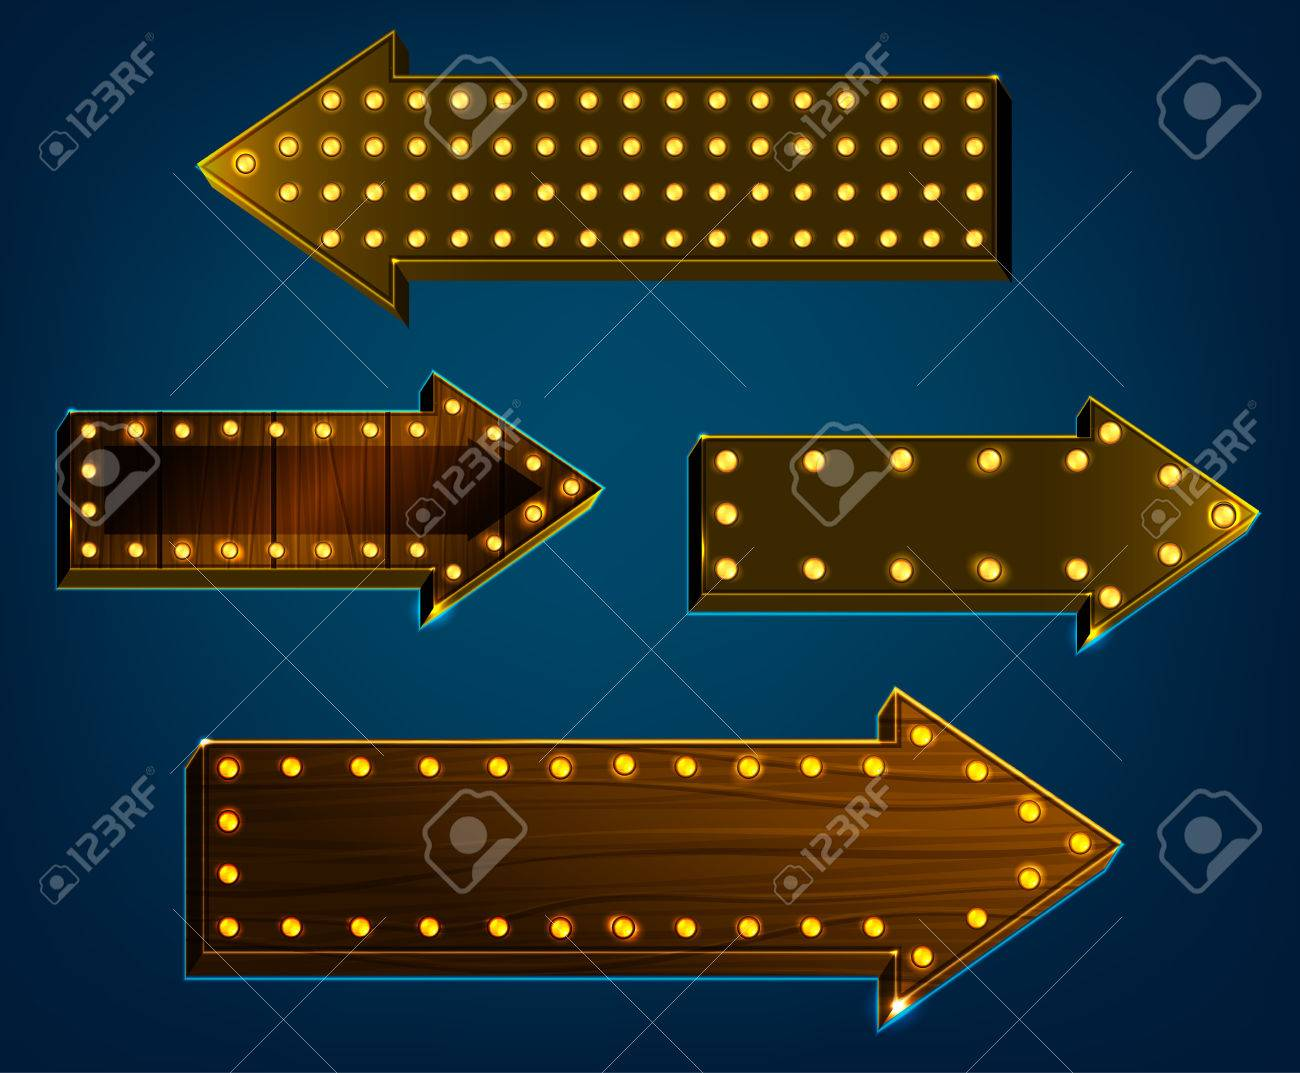 Vector Illustration Of Wooden Arrow Signs With Lighting Bulbs